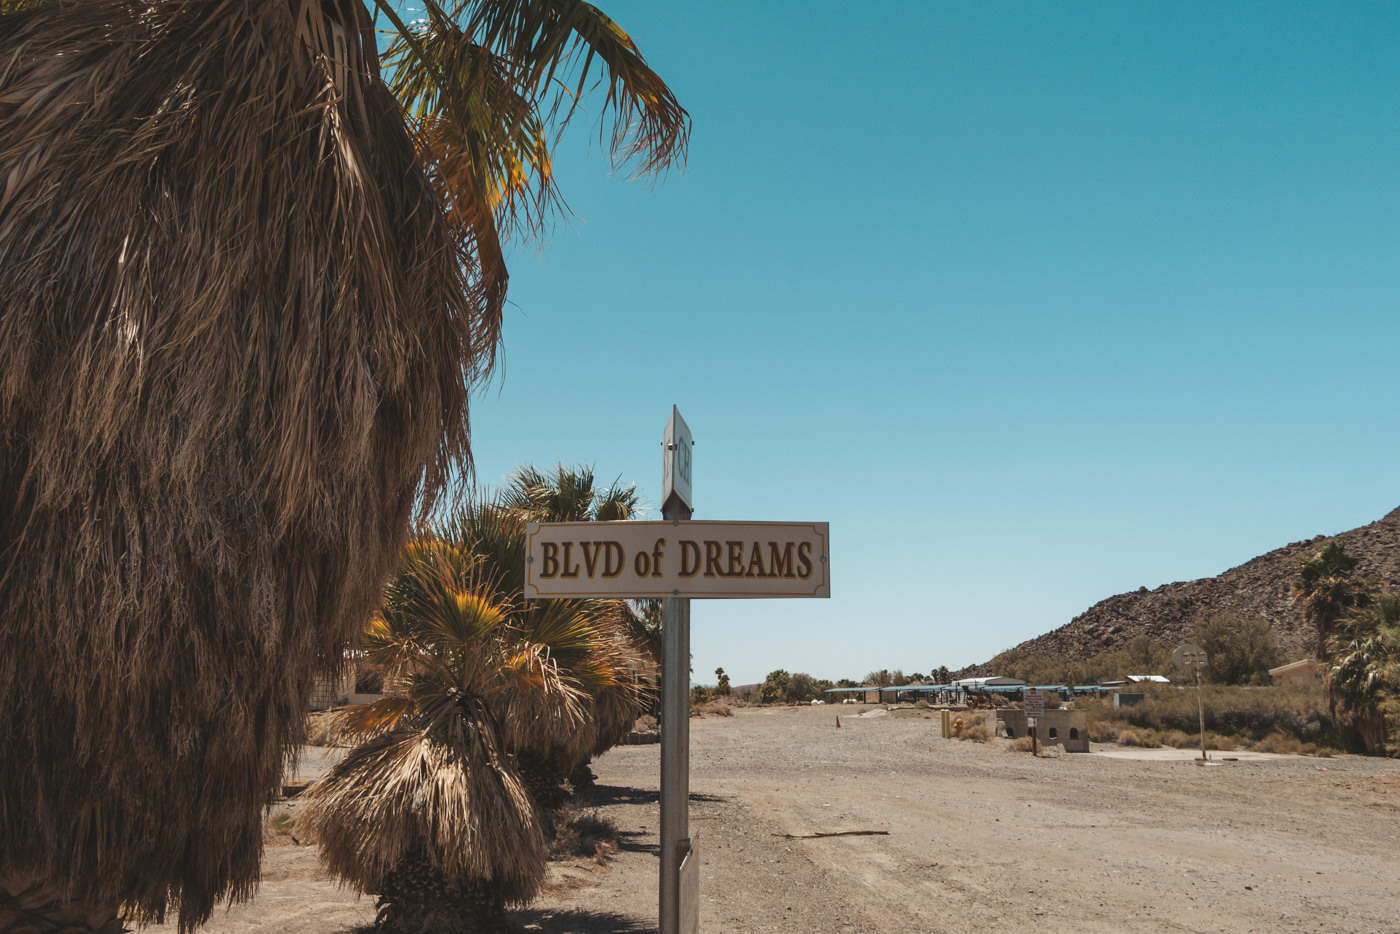 Blvd of Dreams in Nevada